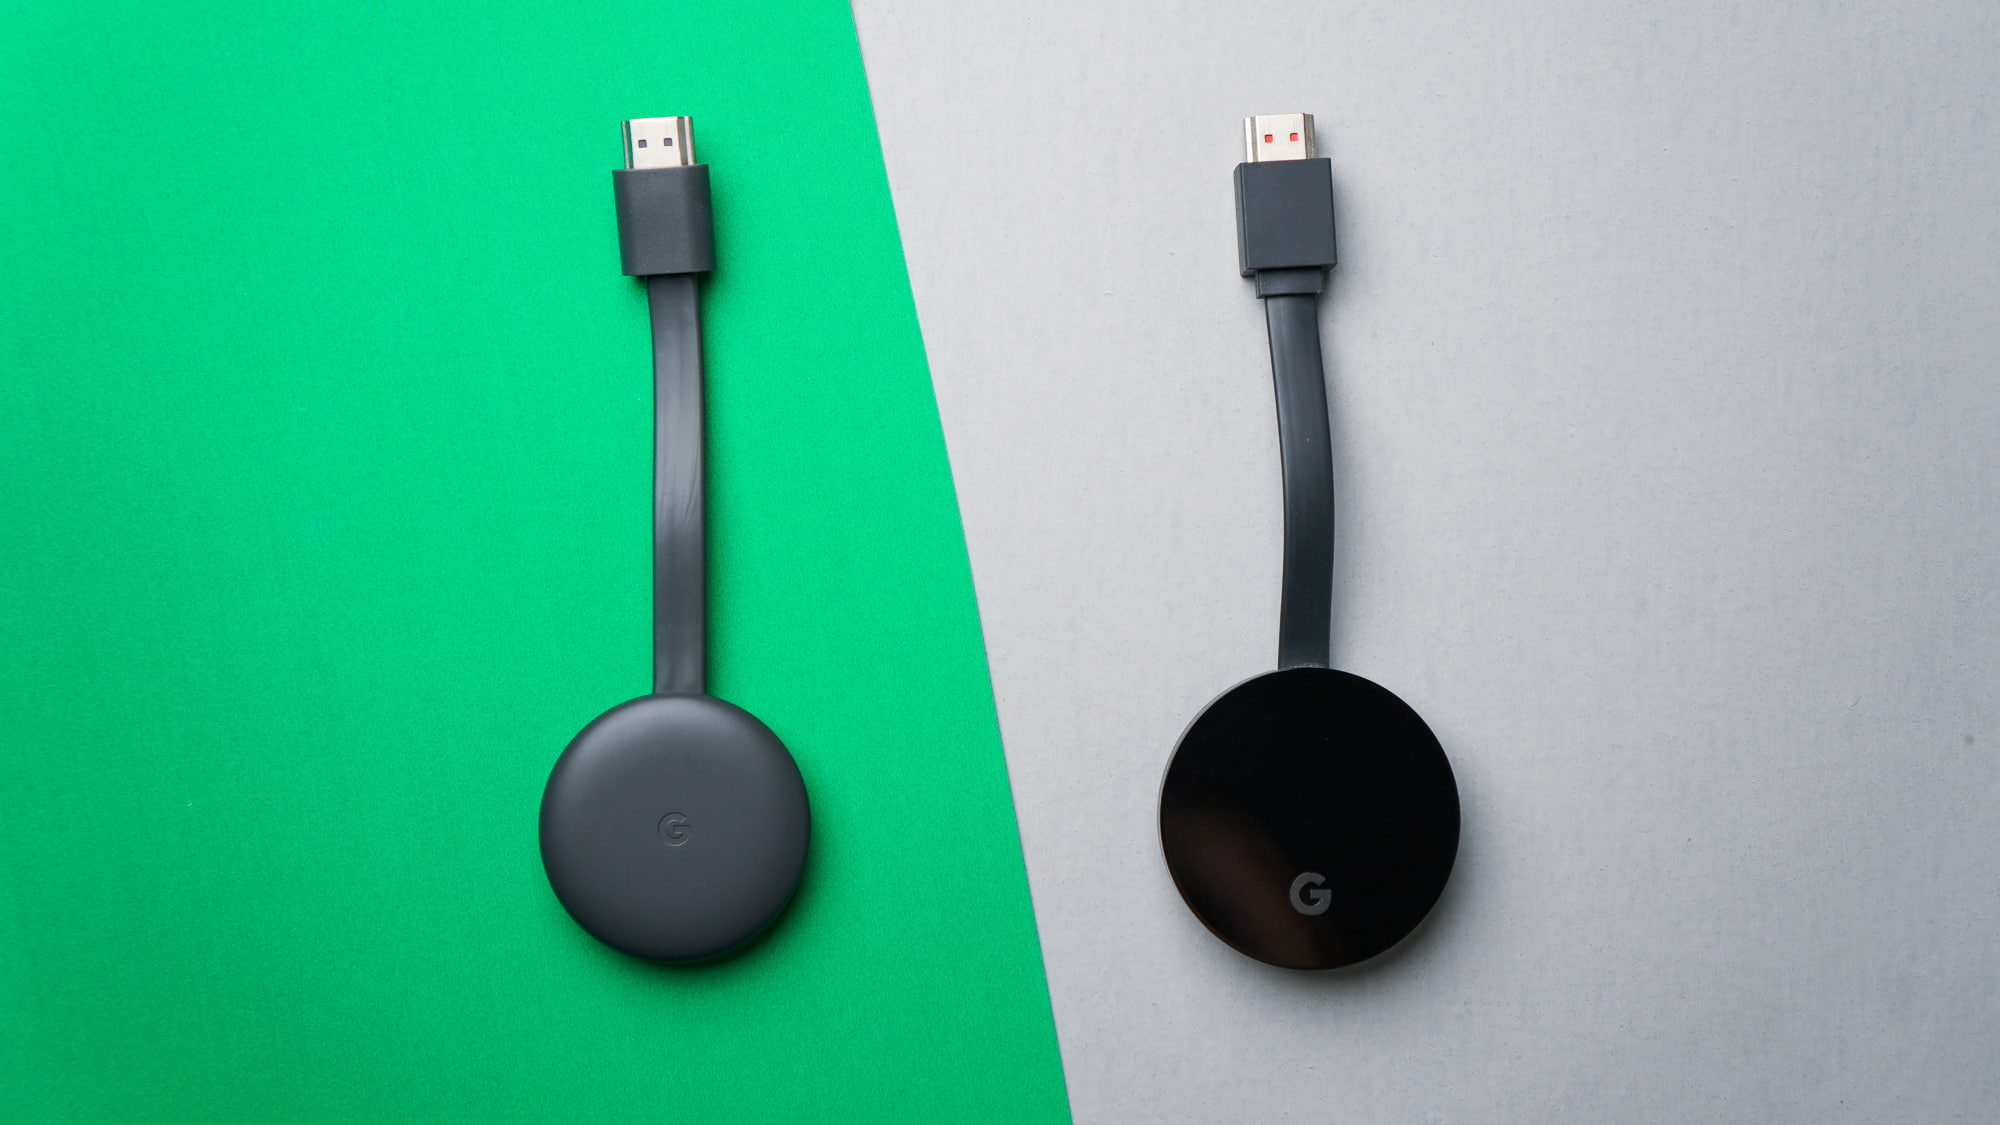 A new Chromecast Ultra with remote running Android TV could be coming very soon